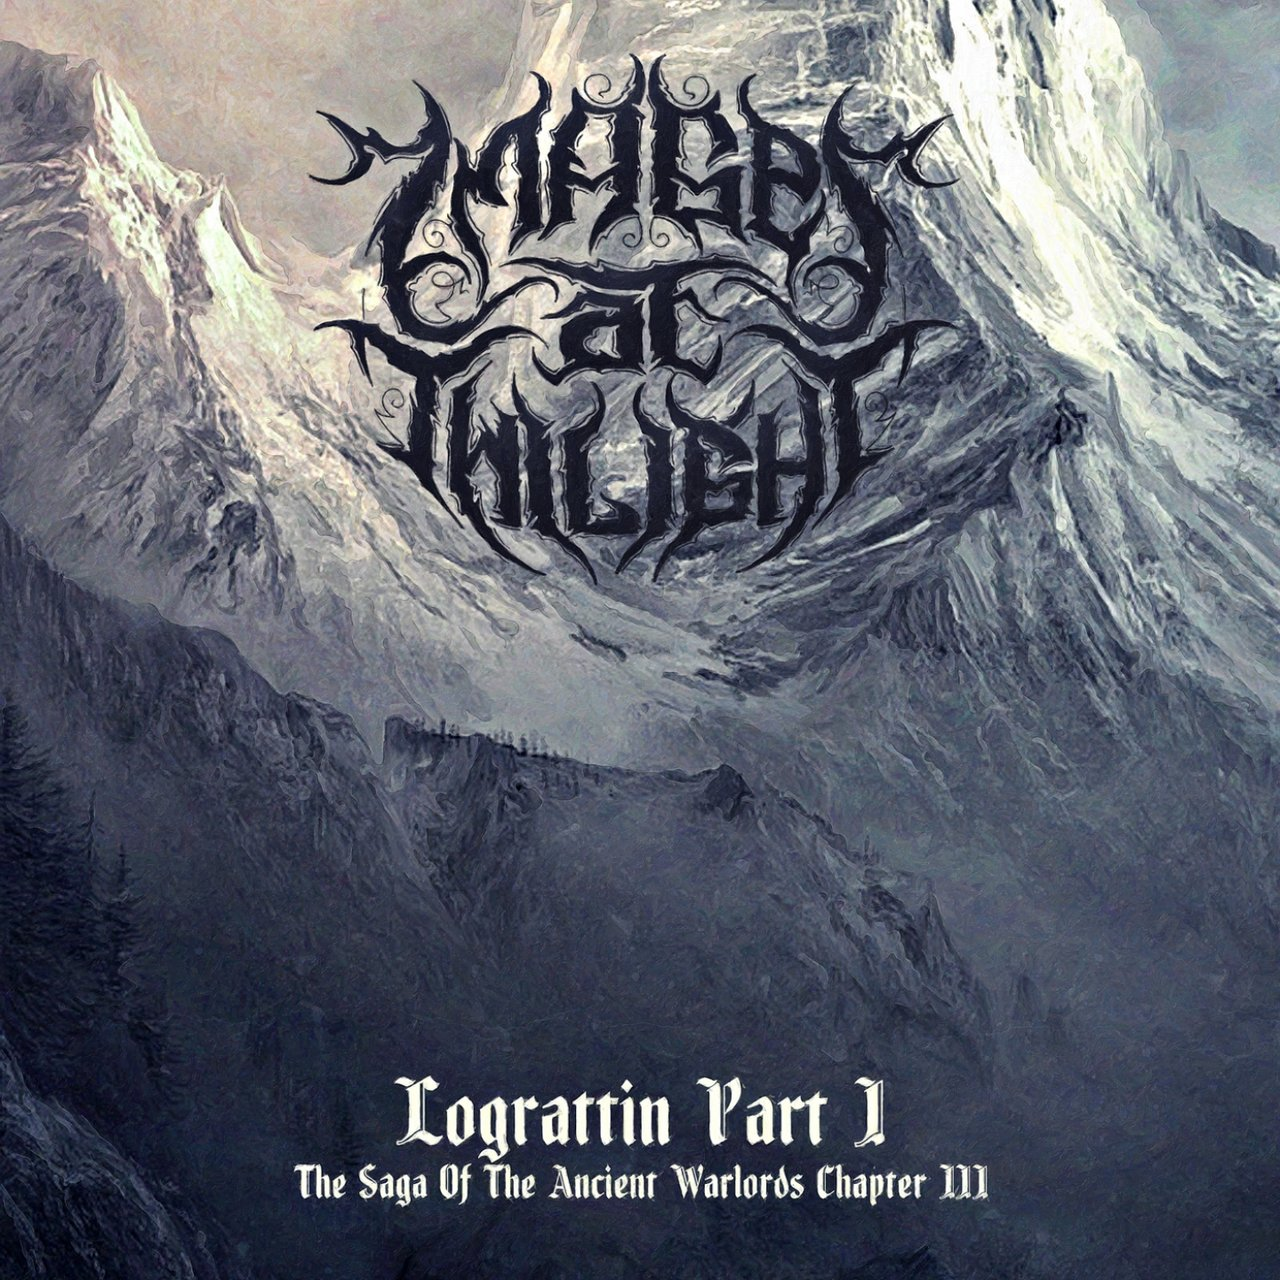 Lograttin, Pt. 1 (The Saga Of The Ancient Warlords Chapter III)